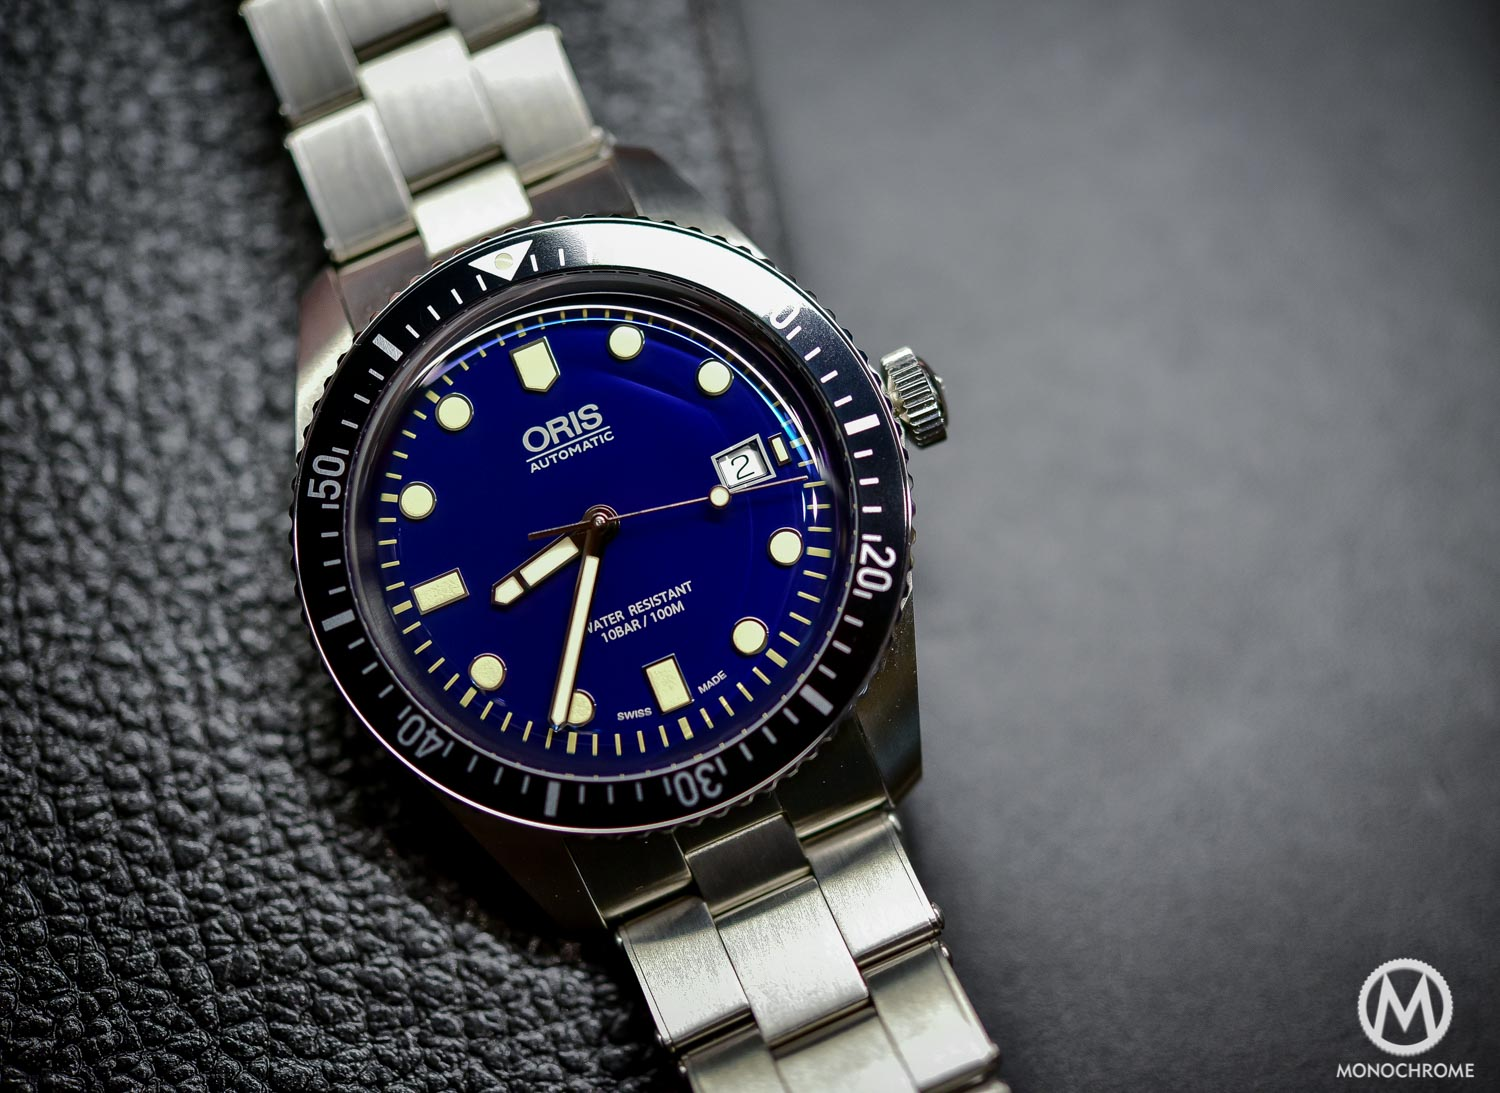 Oris Divers Sixty Five 42mm Blue Dial - Baselworld 2016